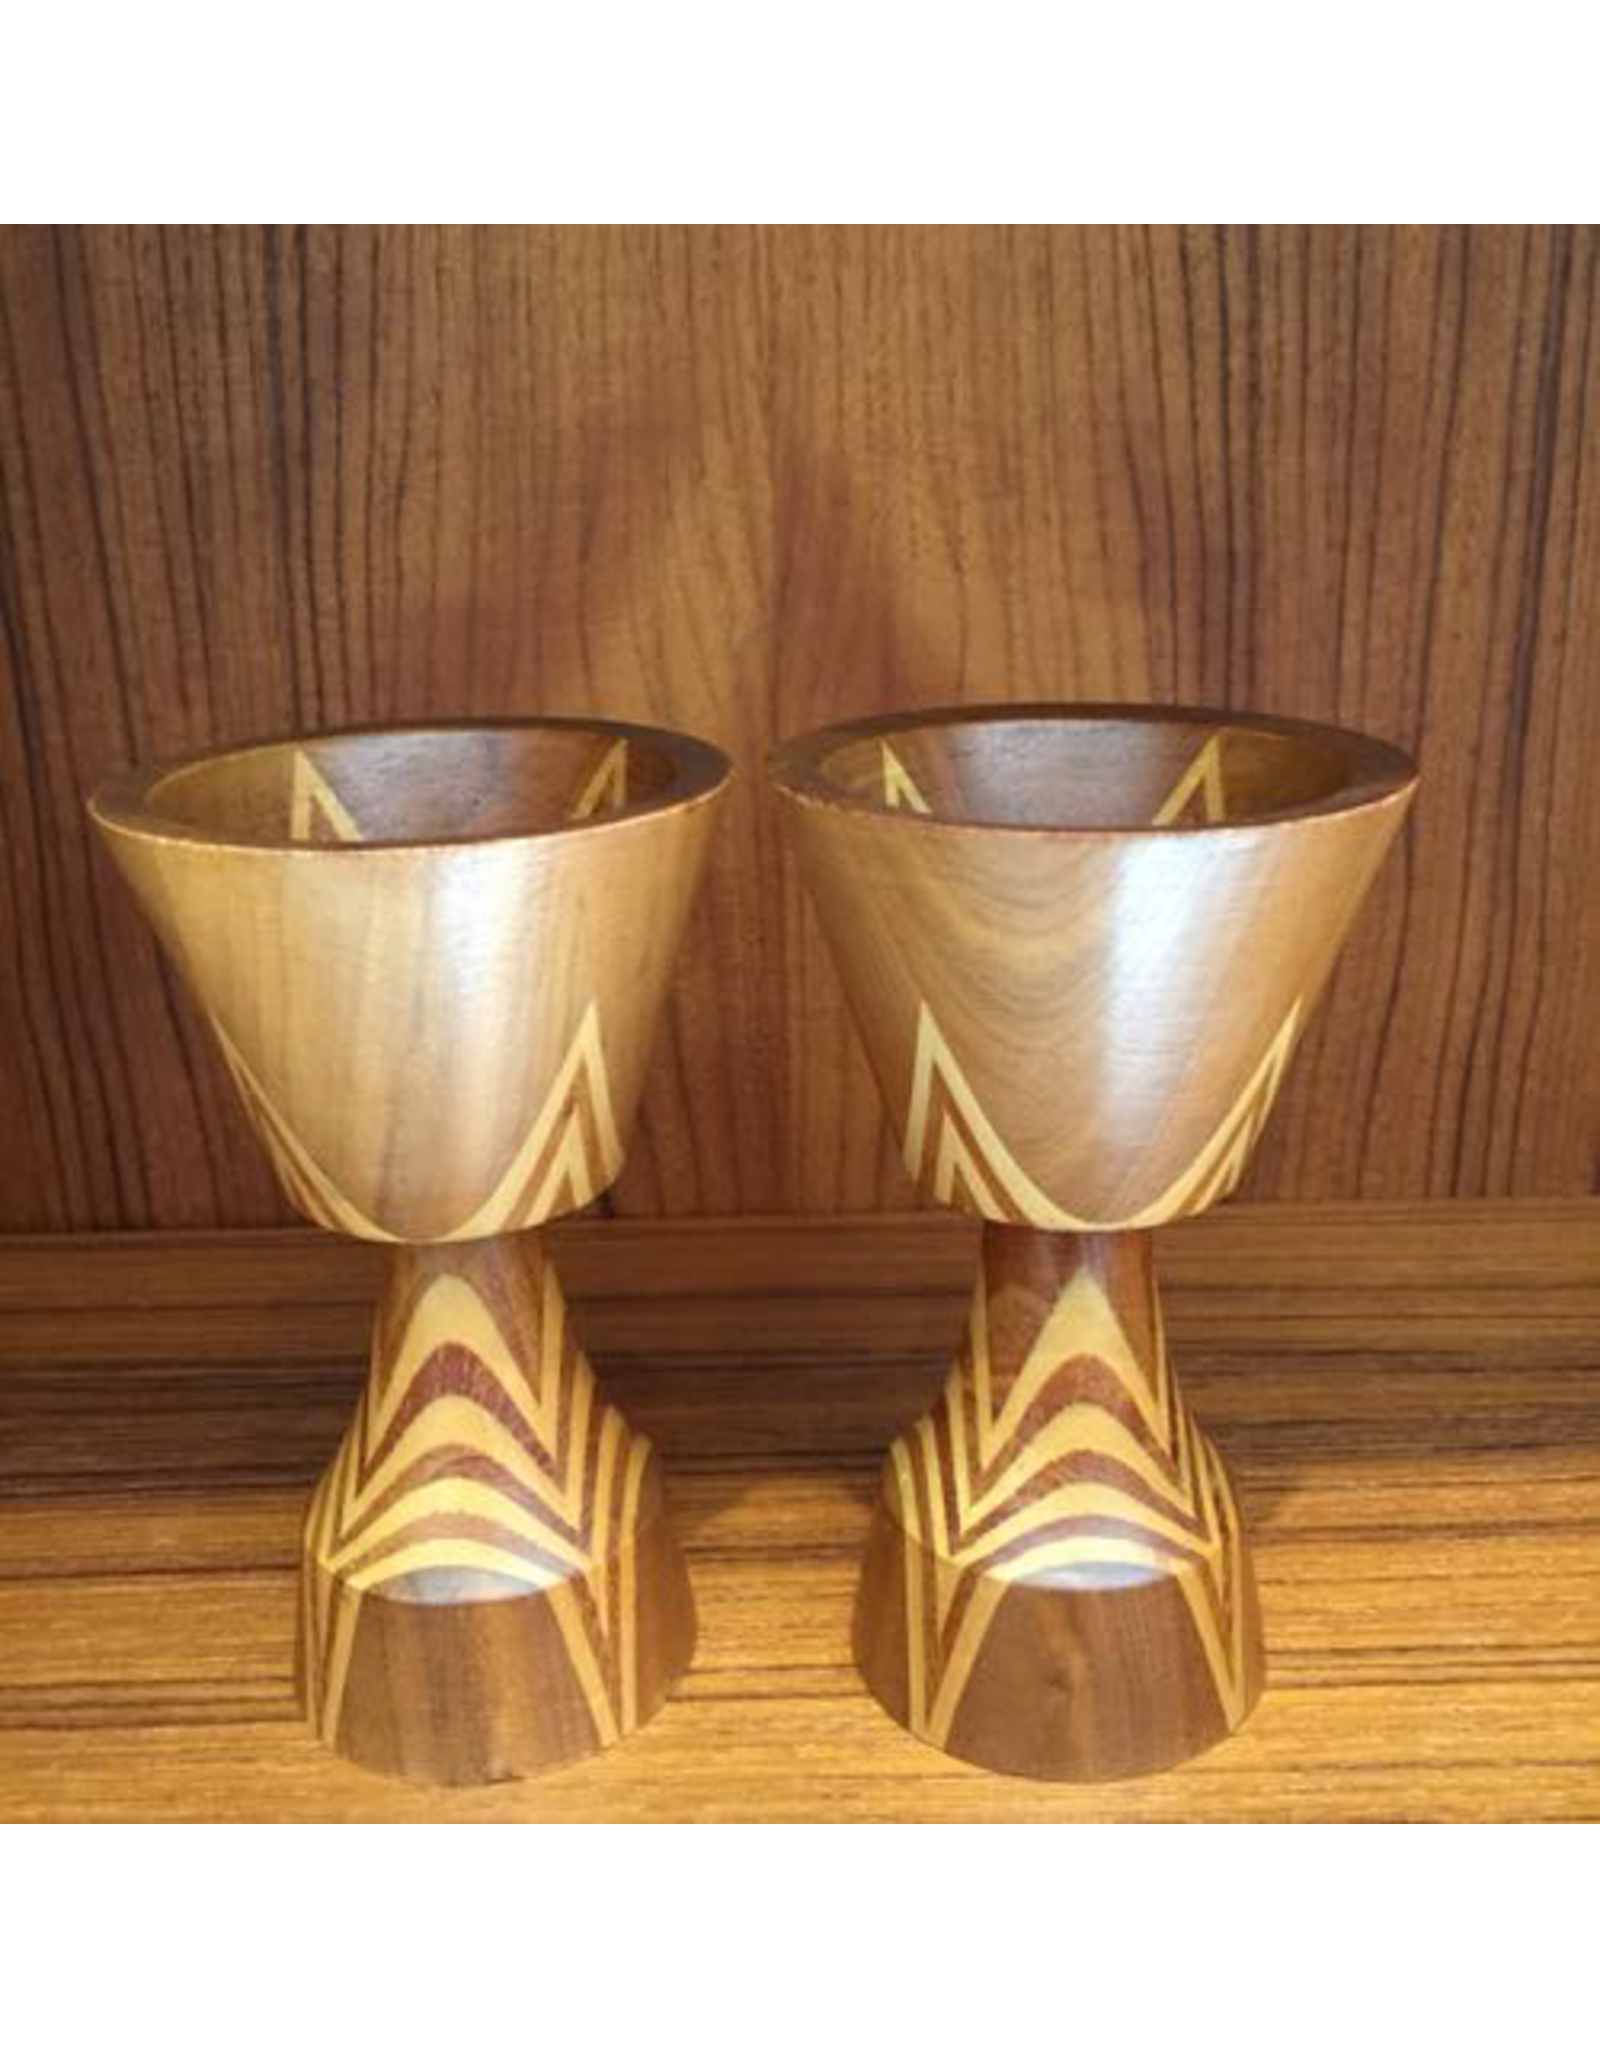 MANKS ANTIQUES PAIR OF INTARSIA WOOD CANDLESTICKS, SIGNED S.G, SWEDEN c.1920, DIA 7 x H14CM